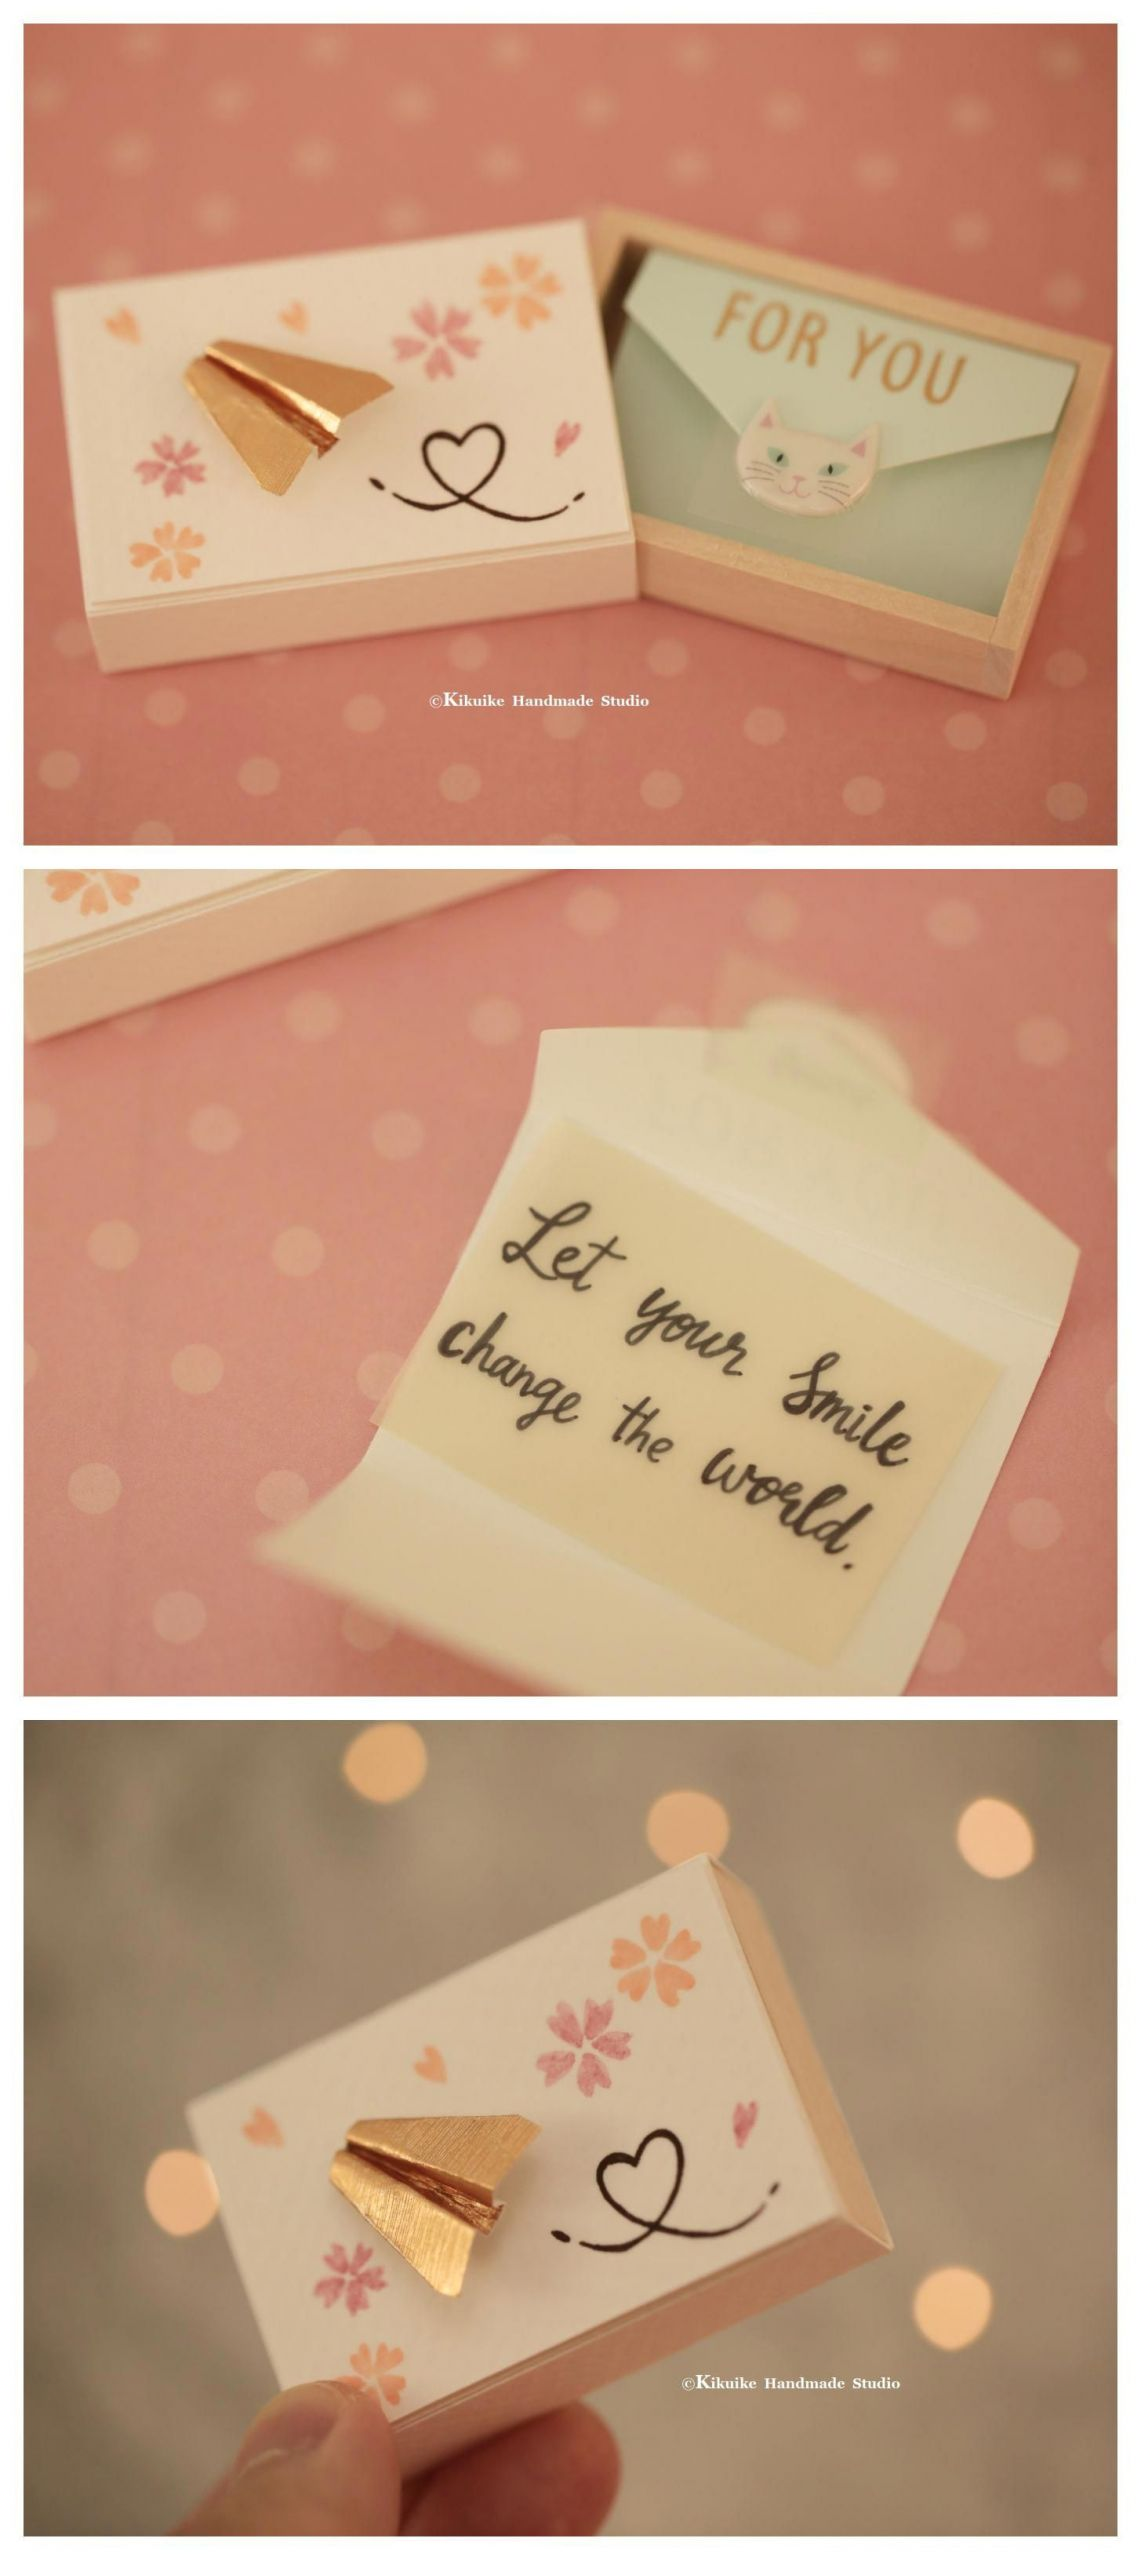 Creative Card Ideas for Girlfriend Surprise Gifts for Him with Images Funny Love Cards